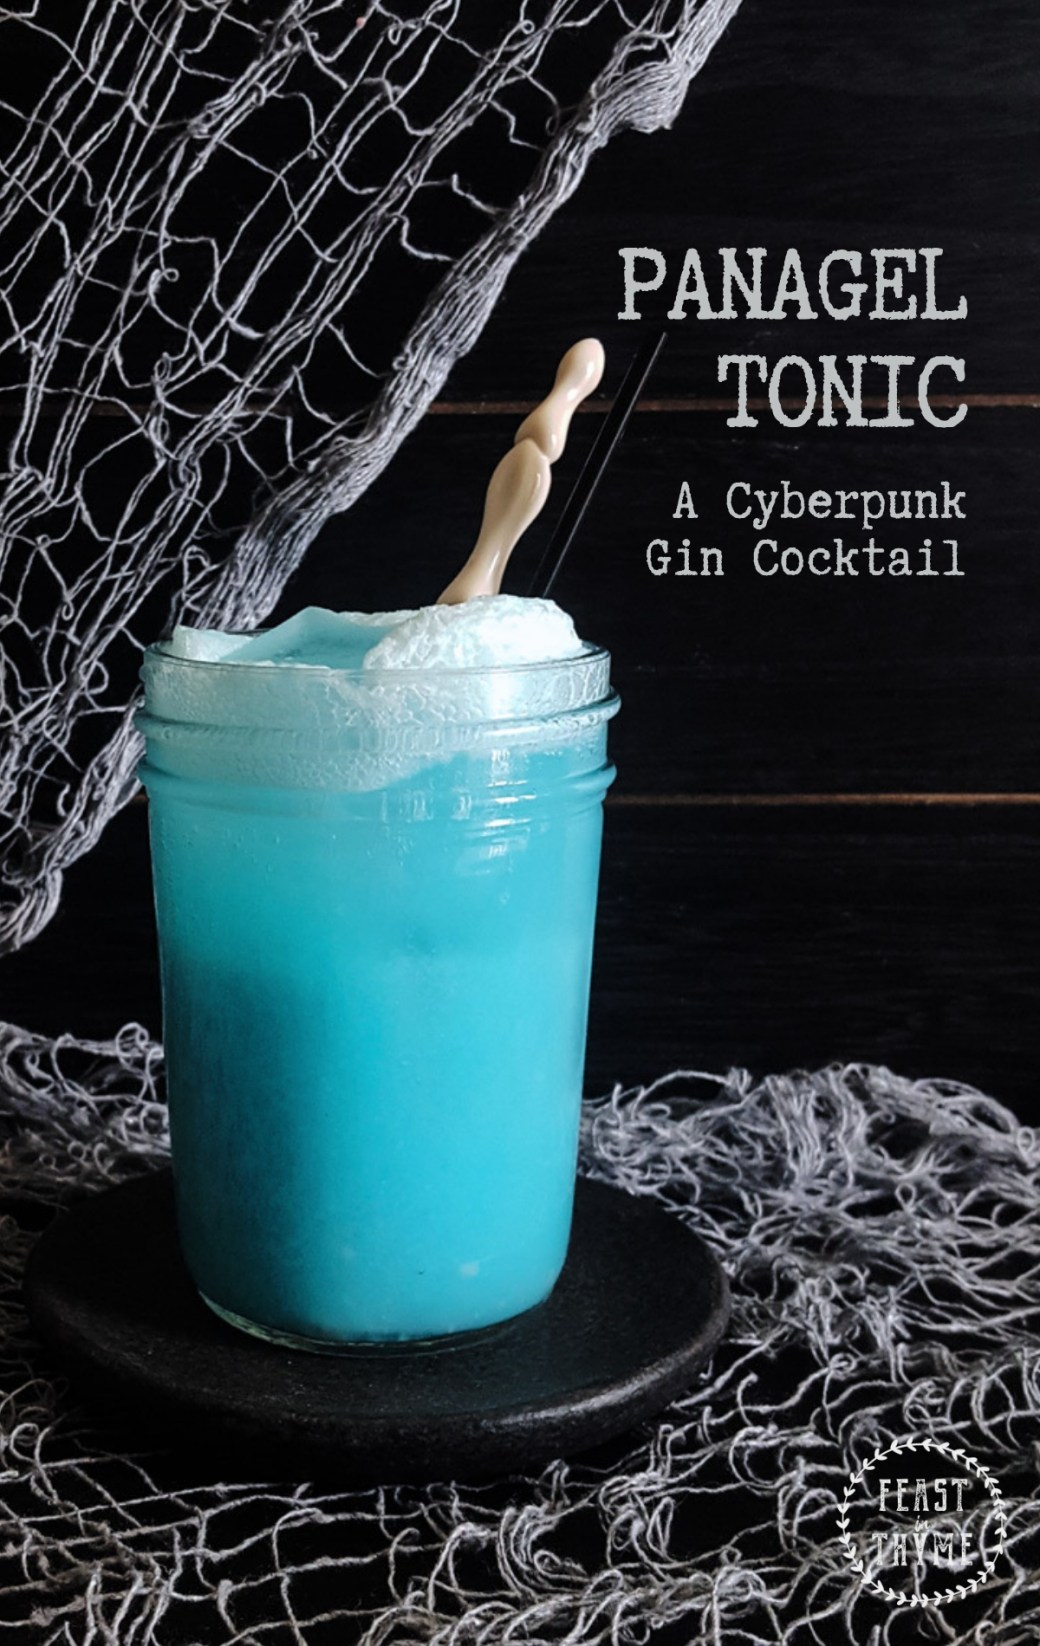 Sweet, sparkling, and outlandishly blue, the PanaGEL Tonic is the perfect gin cocktail for your next post-apocalyptic adventure. #cyberpunk #cocktail #harshrpg | FeastInThyme.com